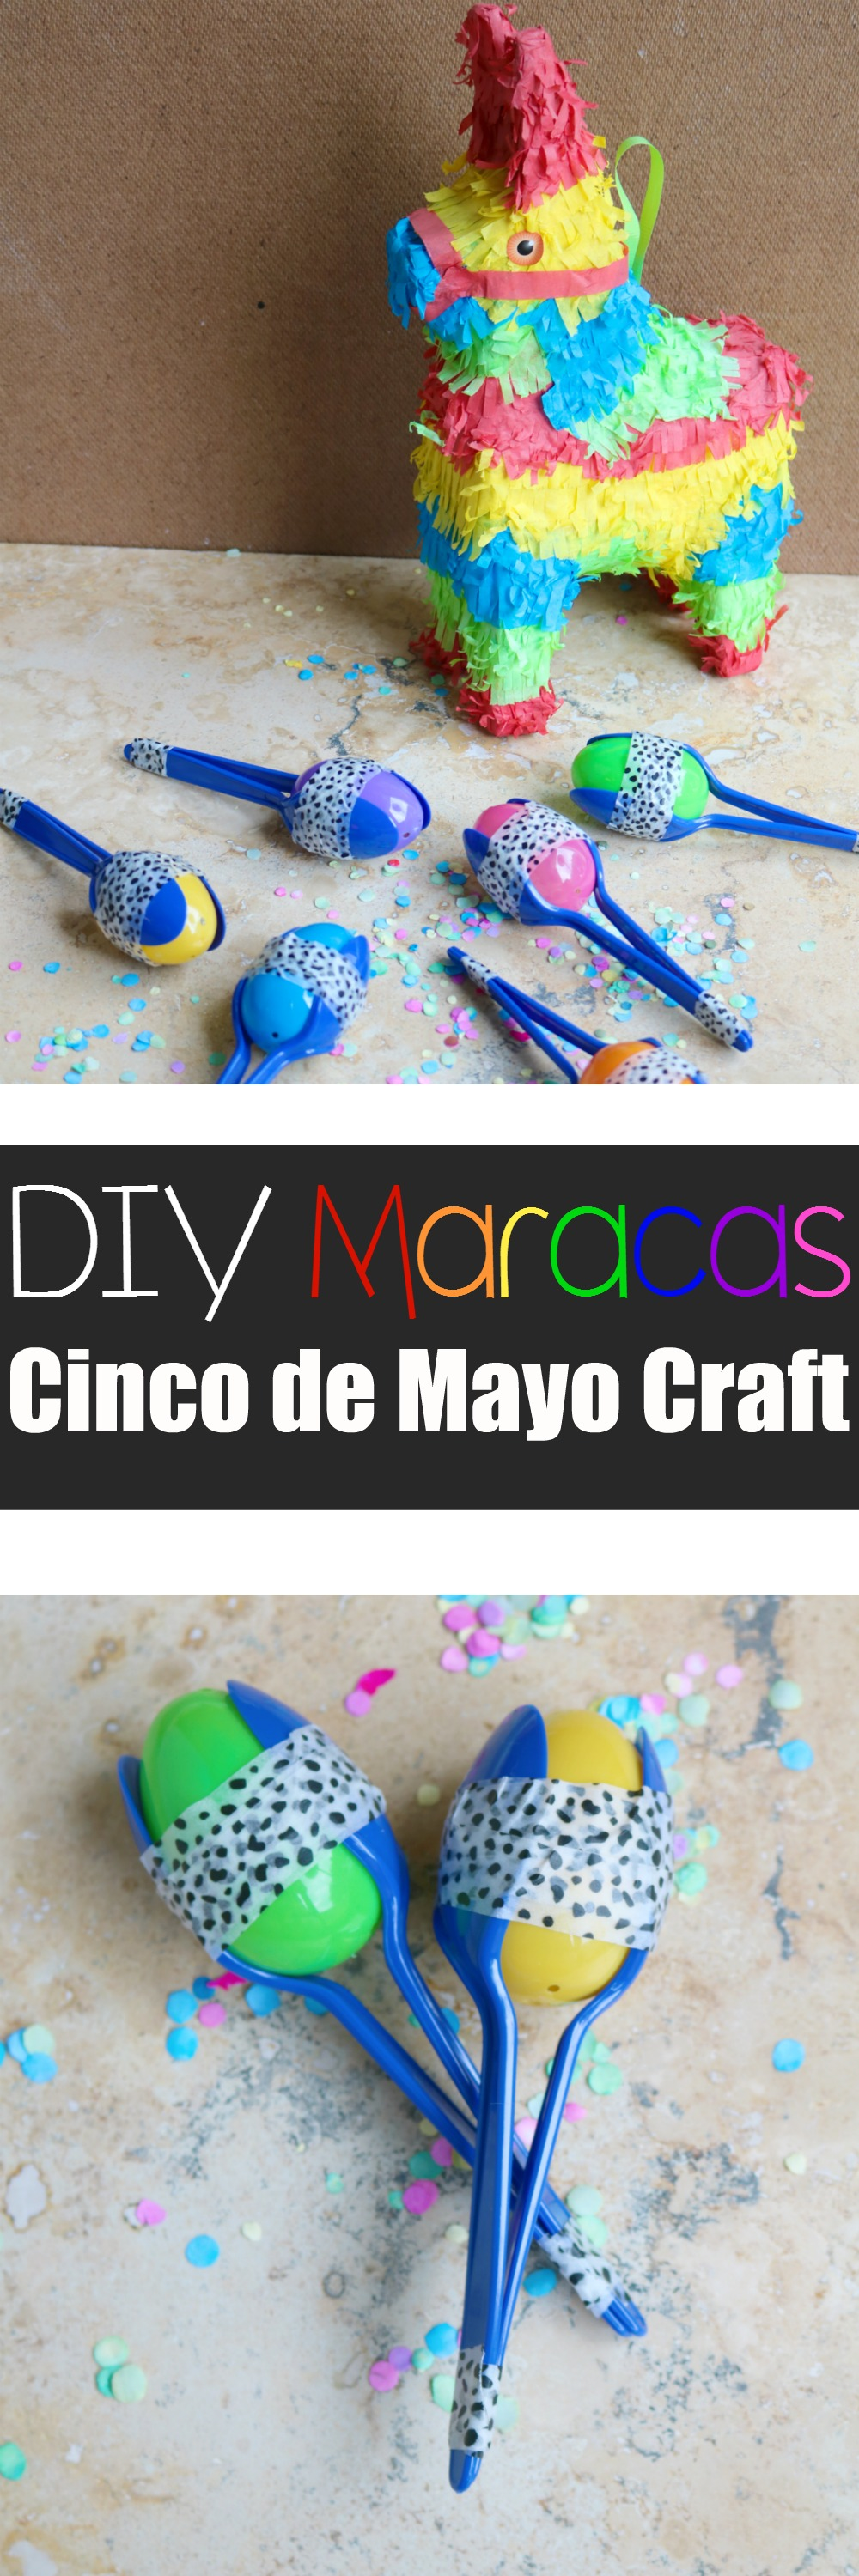 DIY Maracas for Fiesta or Cinco de Mayo | SensiblySara.com